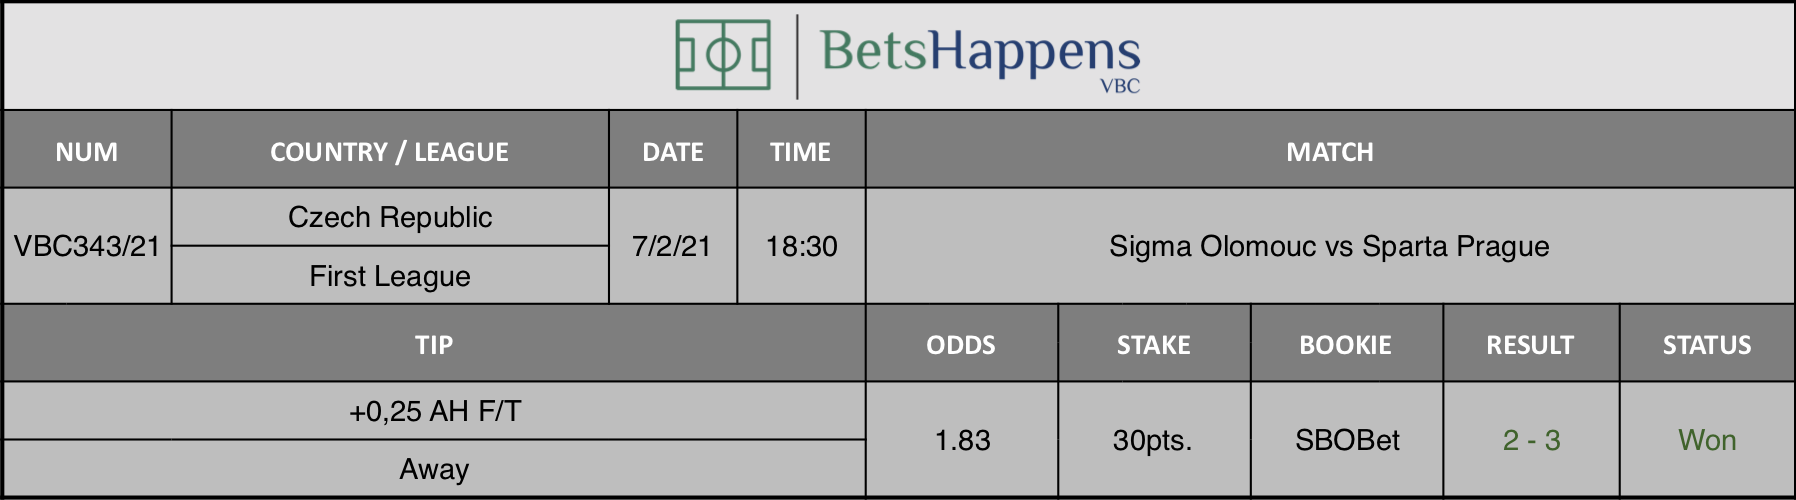 Results of our tip for the Sigma Olomouc vs Sparta Prague match where +0,25 AH F/T Away is recommended.